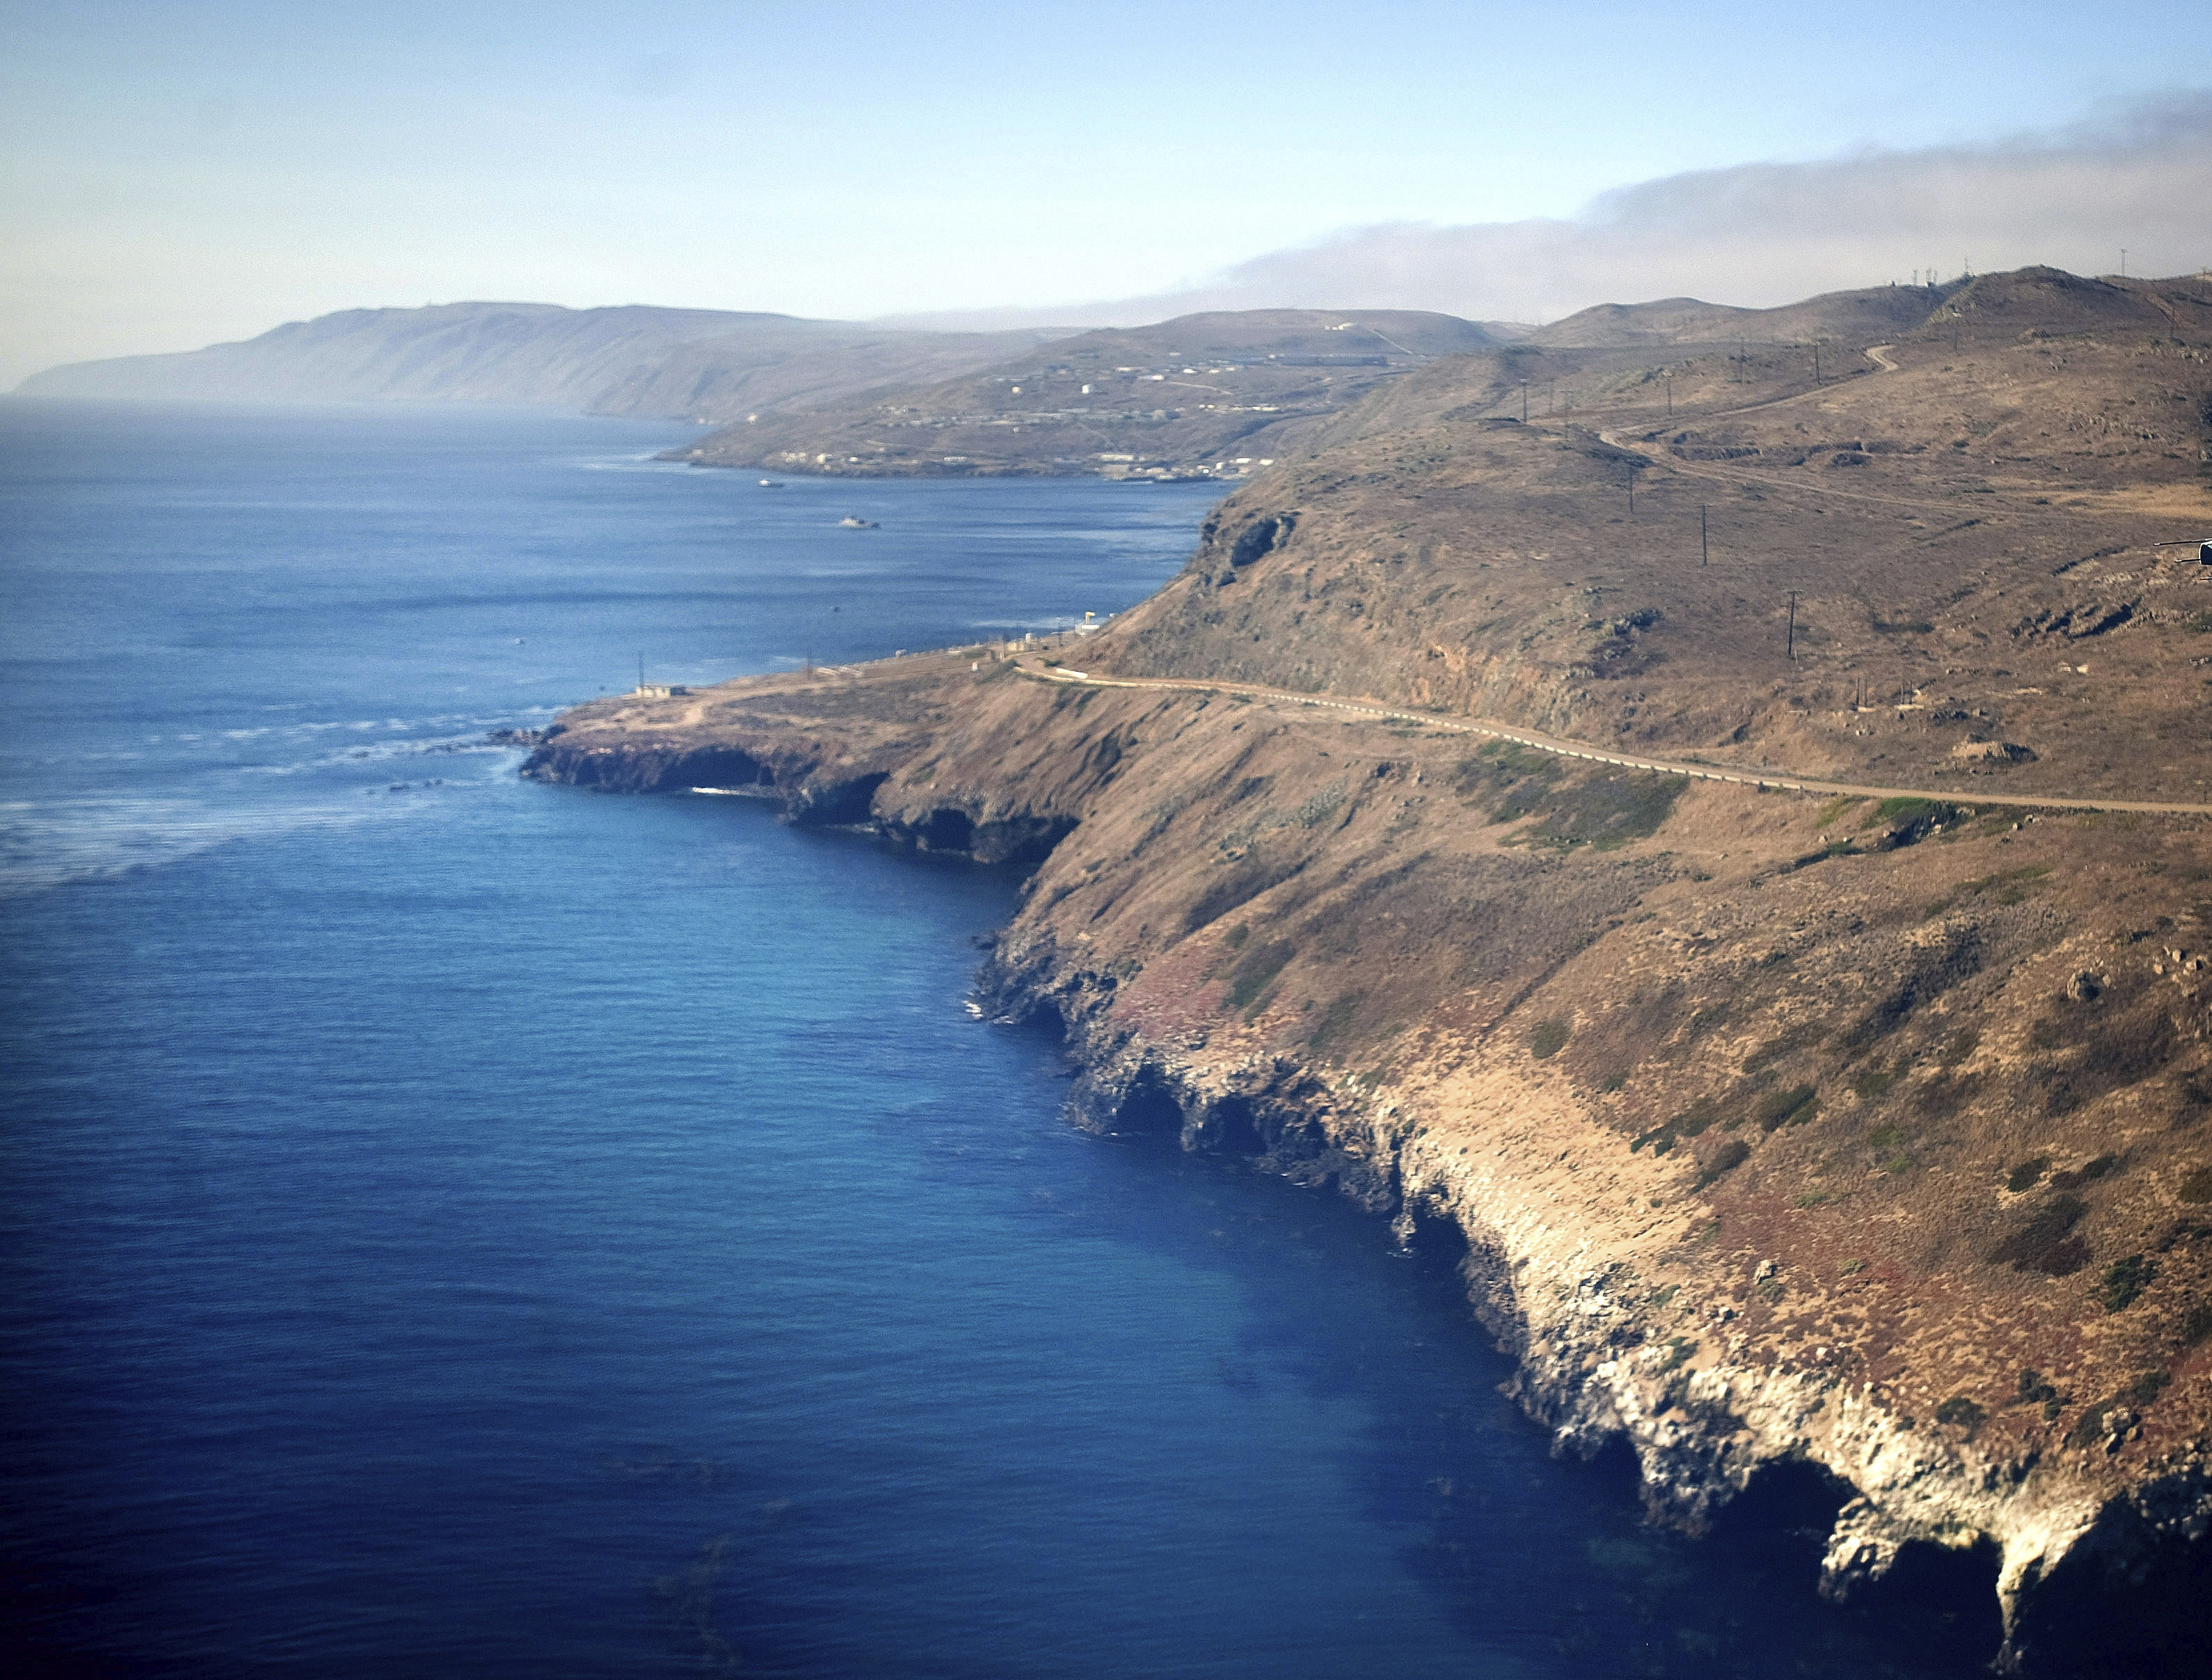 An aerial view of the coast and Pacific Ocean taken flying in to San Clemente Island, in San Diego, on July 16, 2013.